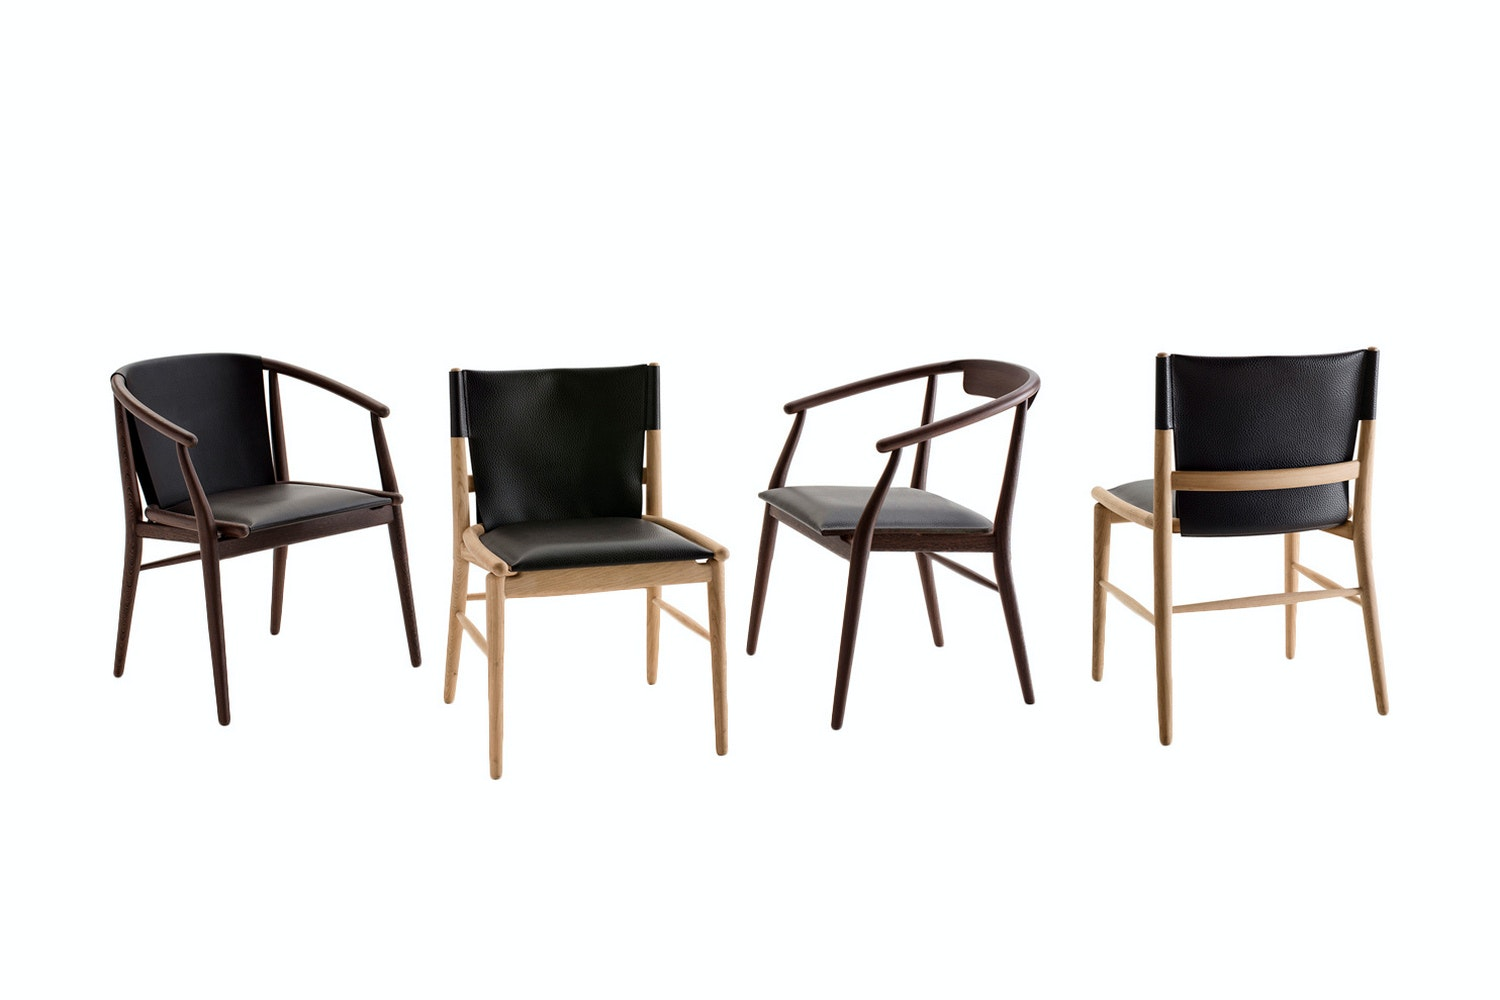 Jens Chair by Antonio Citterio for B&B Italia